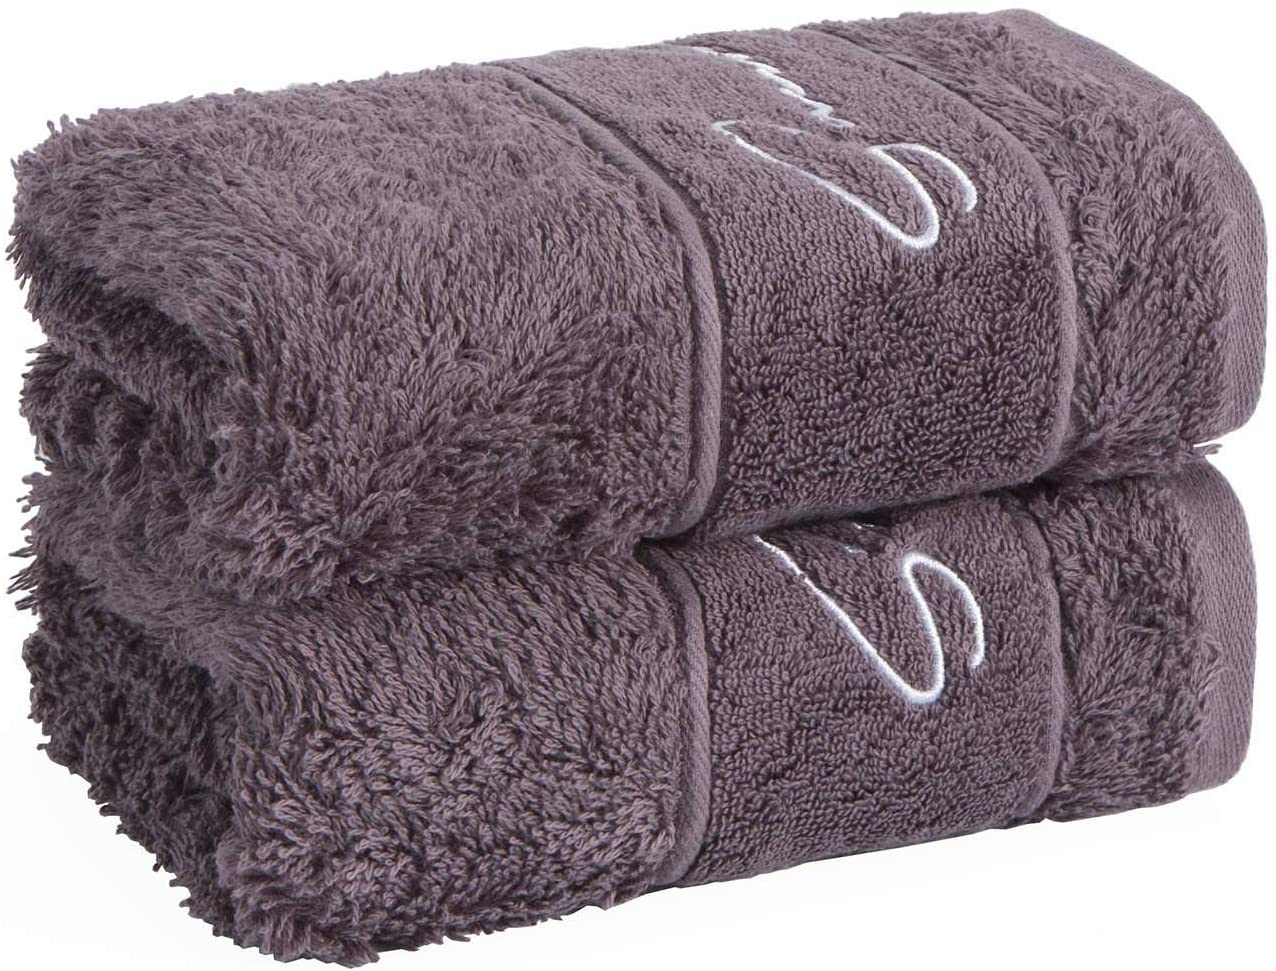 SANLI Xinjiang Long-Staple Luxe Cotton, Single-Twist Yarn, Hand Towels, Super Soft, Extremely Absorbent, High Color Fastness, Resistant to Washing, No Lint No Fading (2PCS, Blue Gray, 35x74)